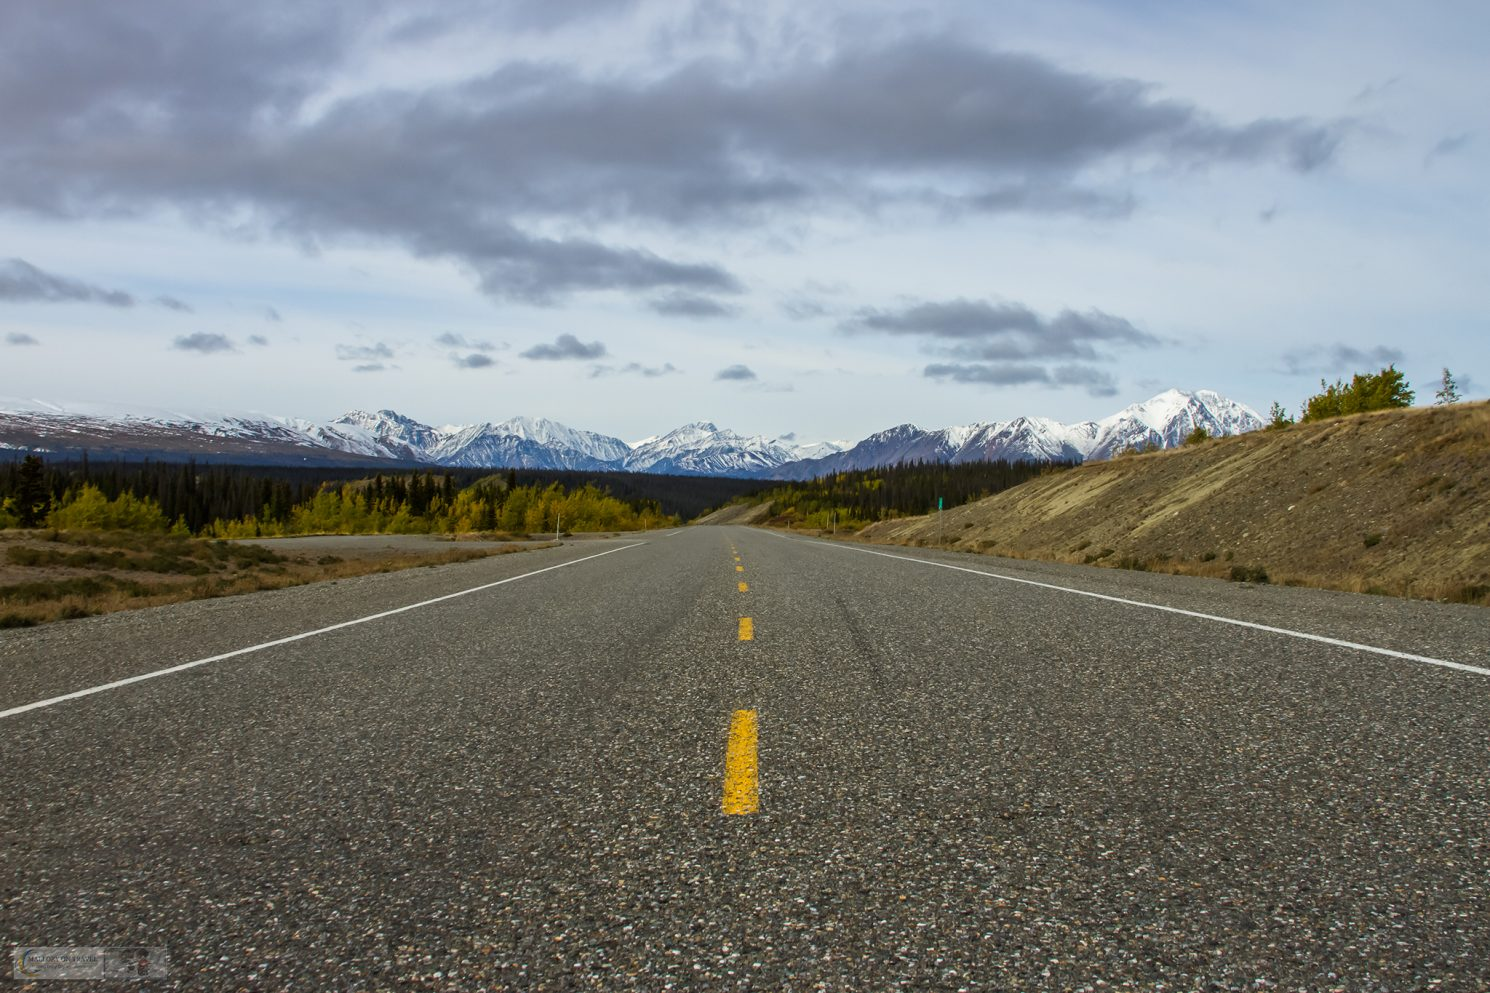 A road trip in the Yukon, Canada, miles of open road in the wilderness of Kluane National Park on Mallory on Travel adventure travel, photography, travel Iain Mallory_Yukon-1-27